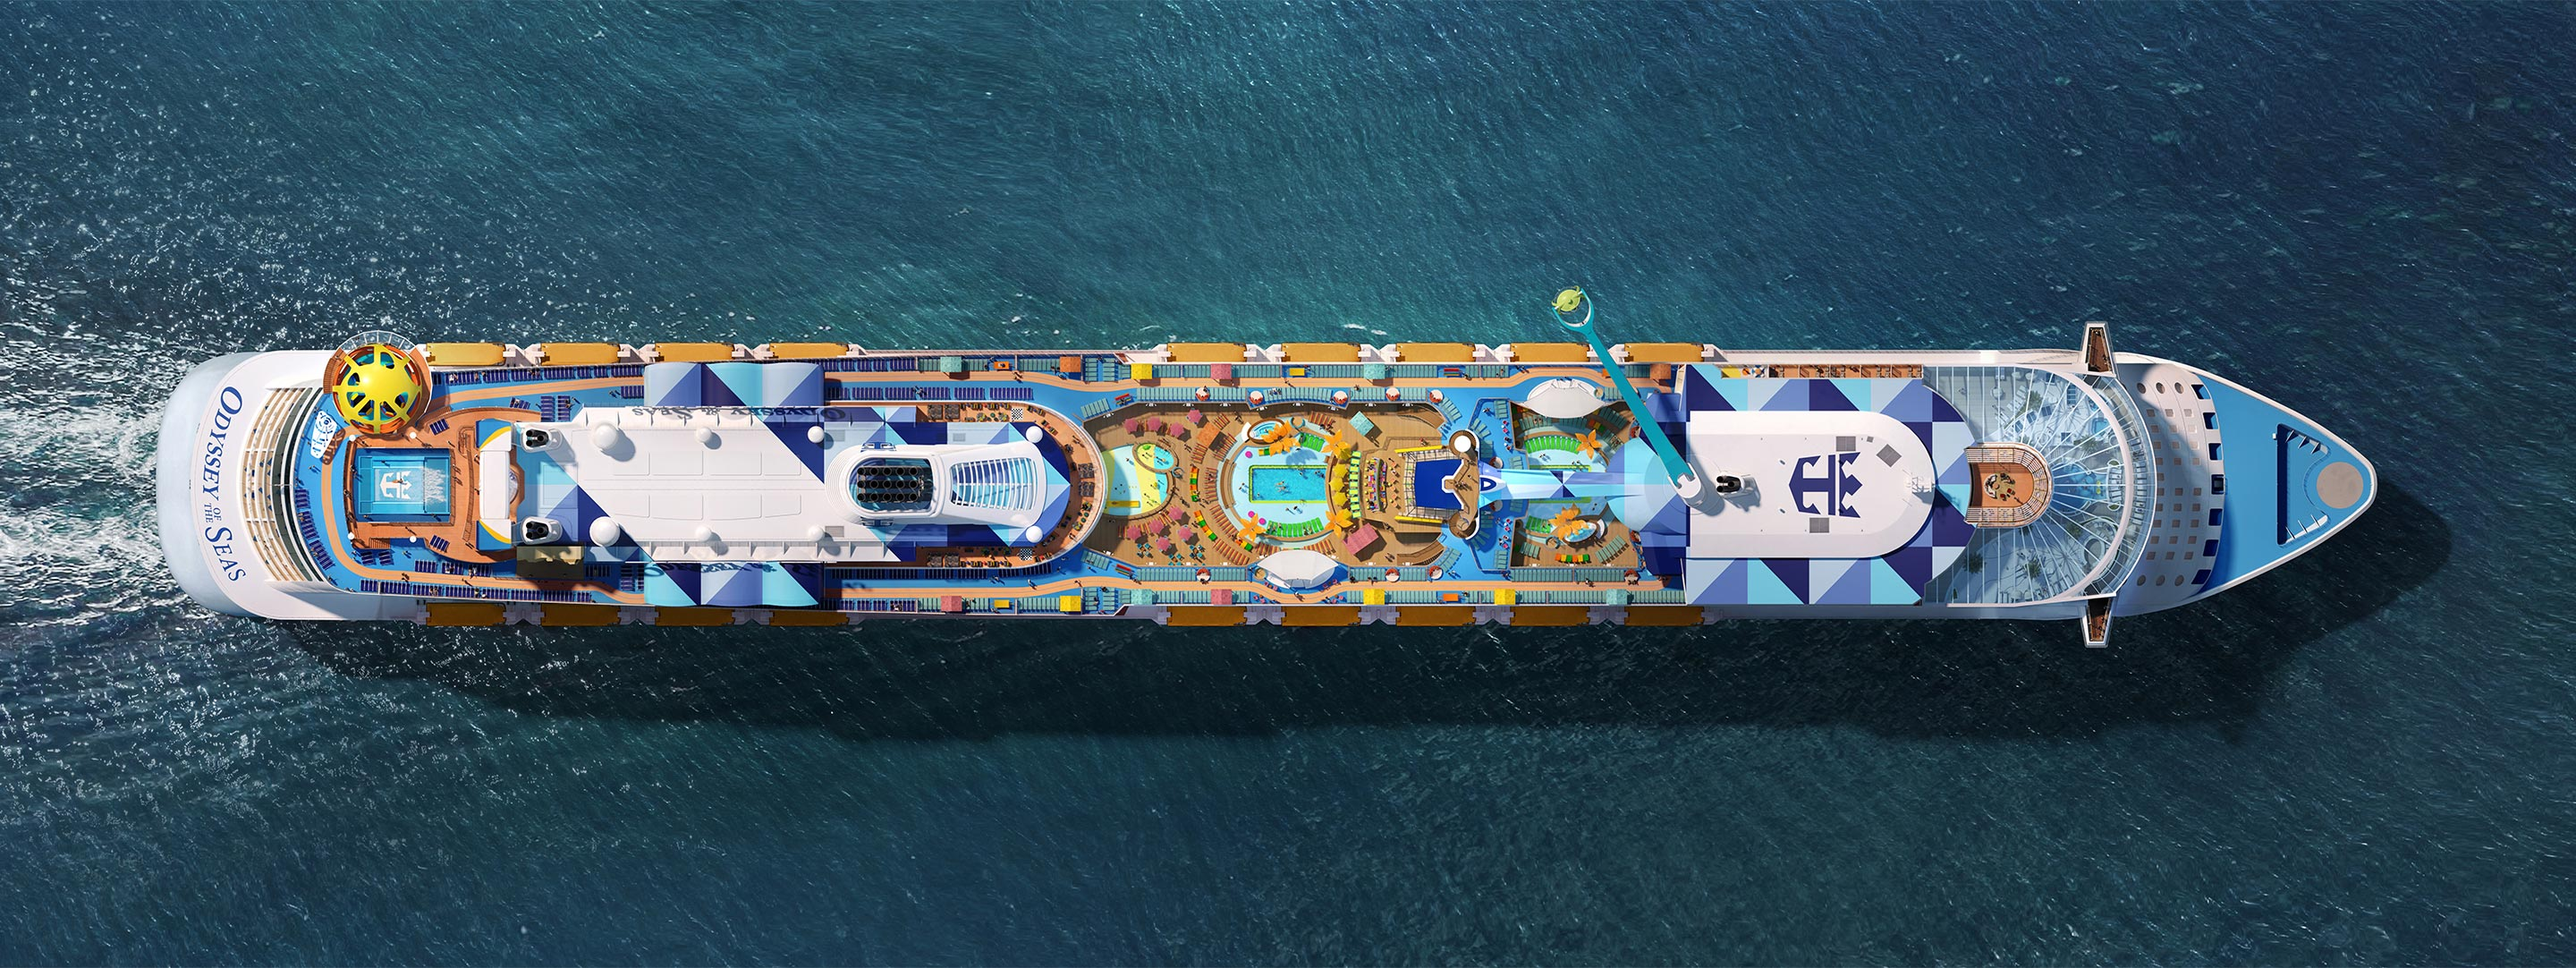 Aerial View of Spectrum of the Seas